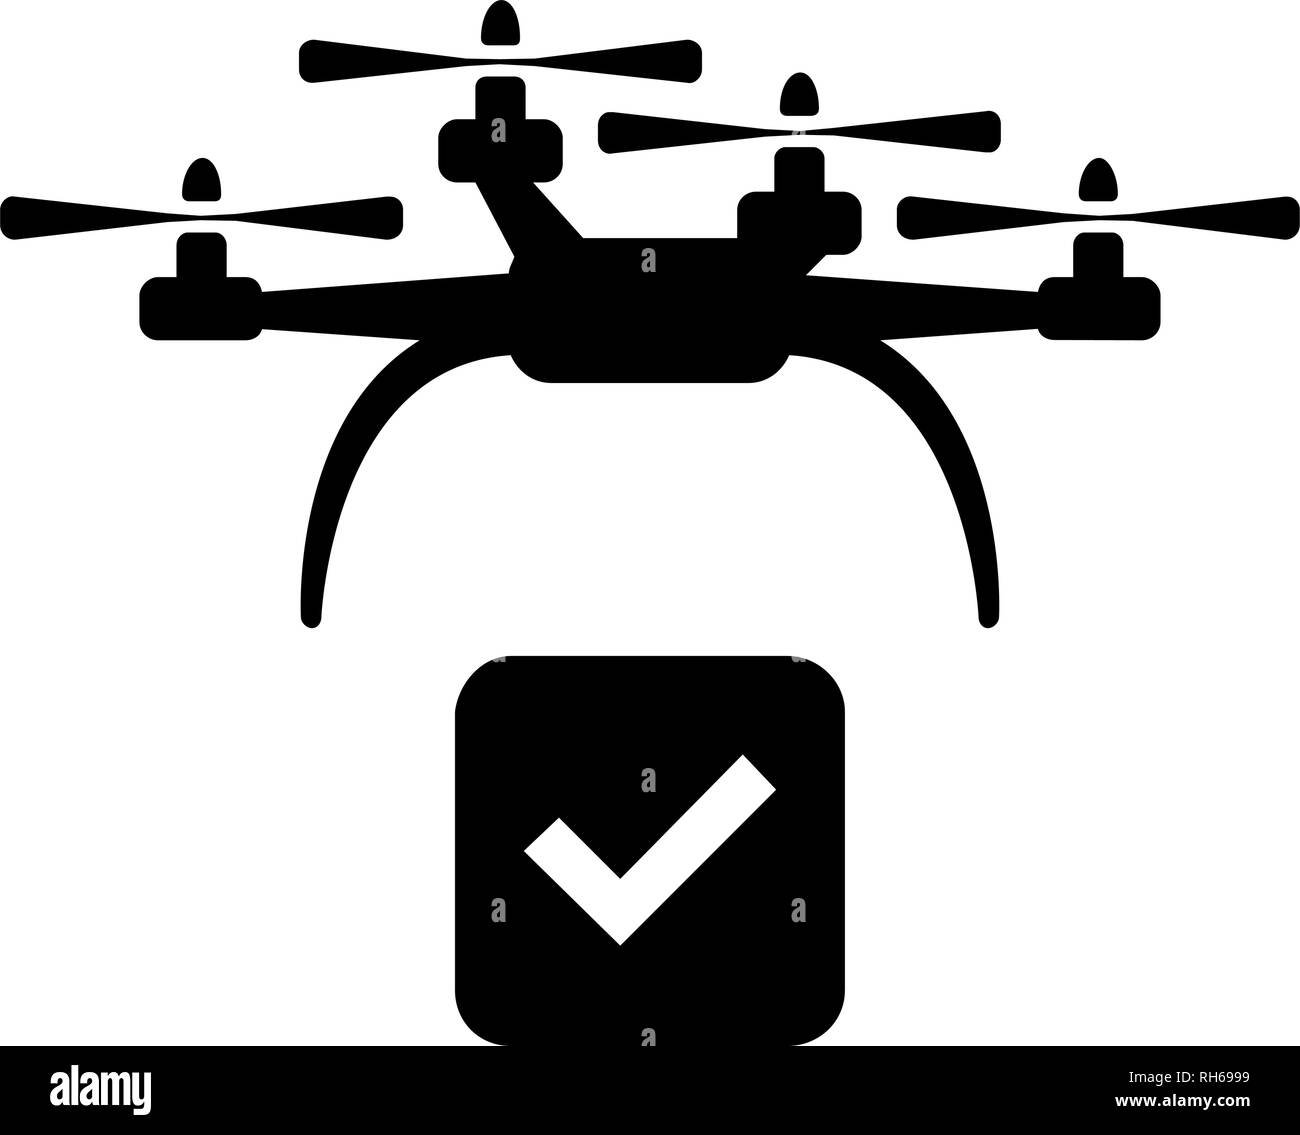 Vector drone icon. Modern, simple flat vector illustration for web site or mobile app. Isolated on white. - Stock Image